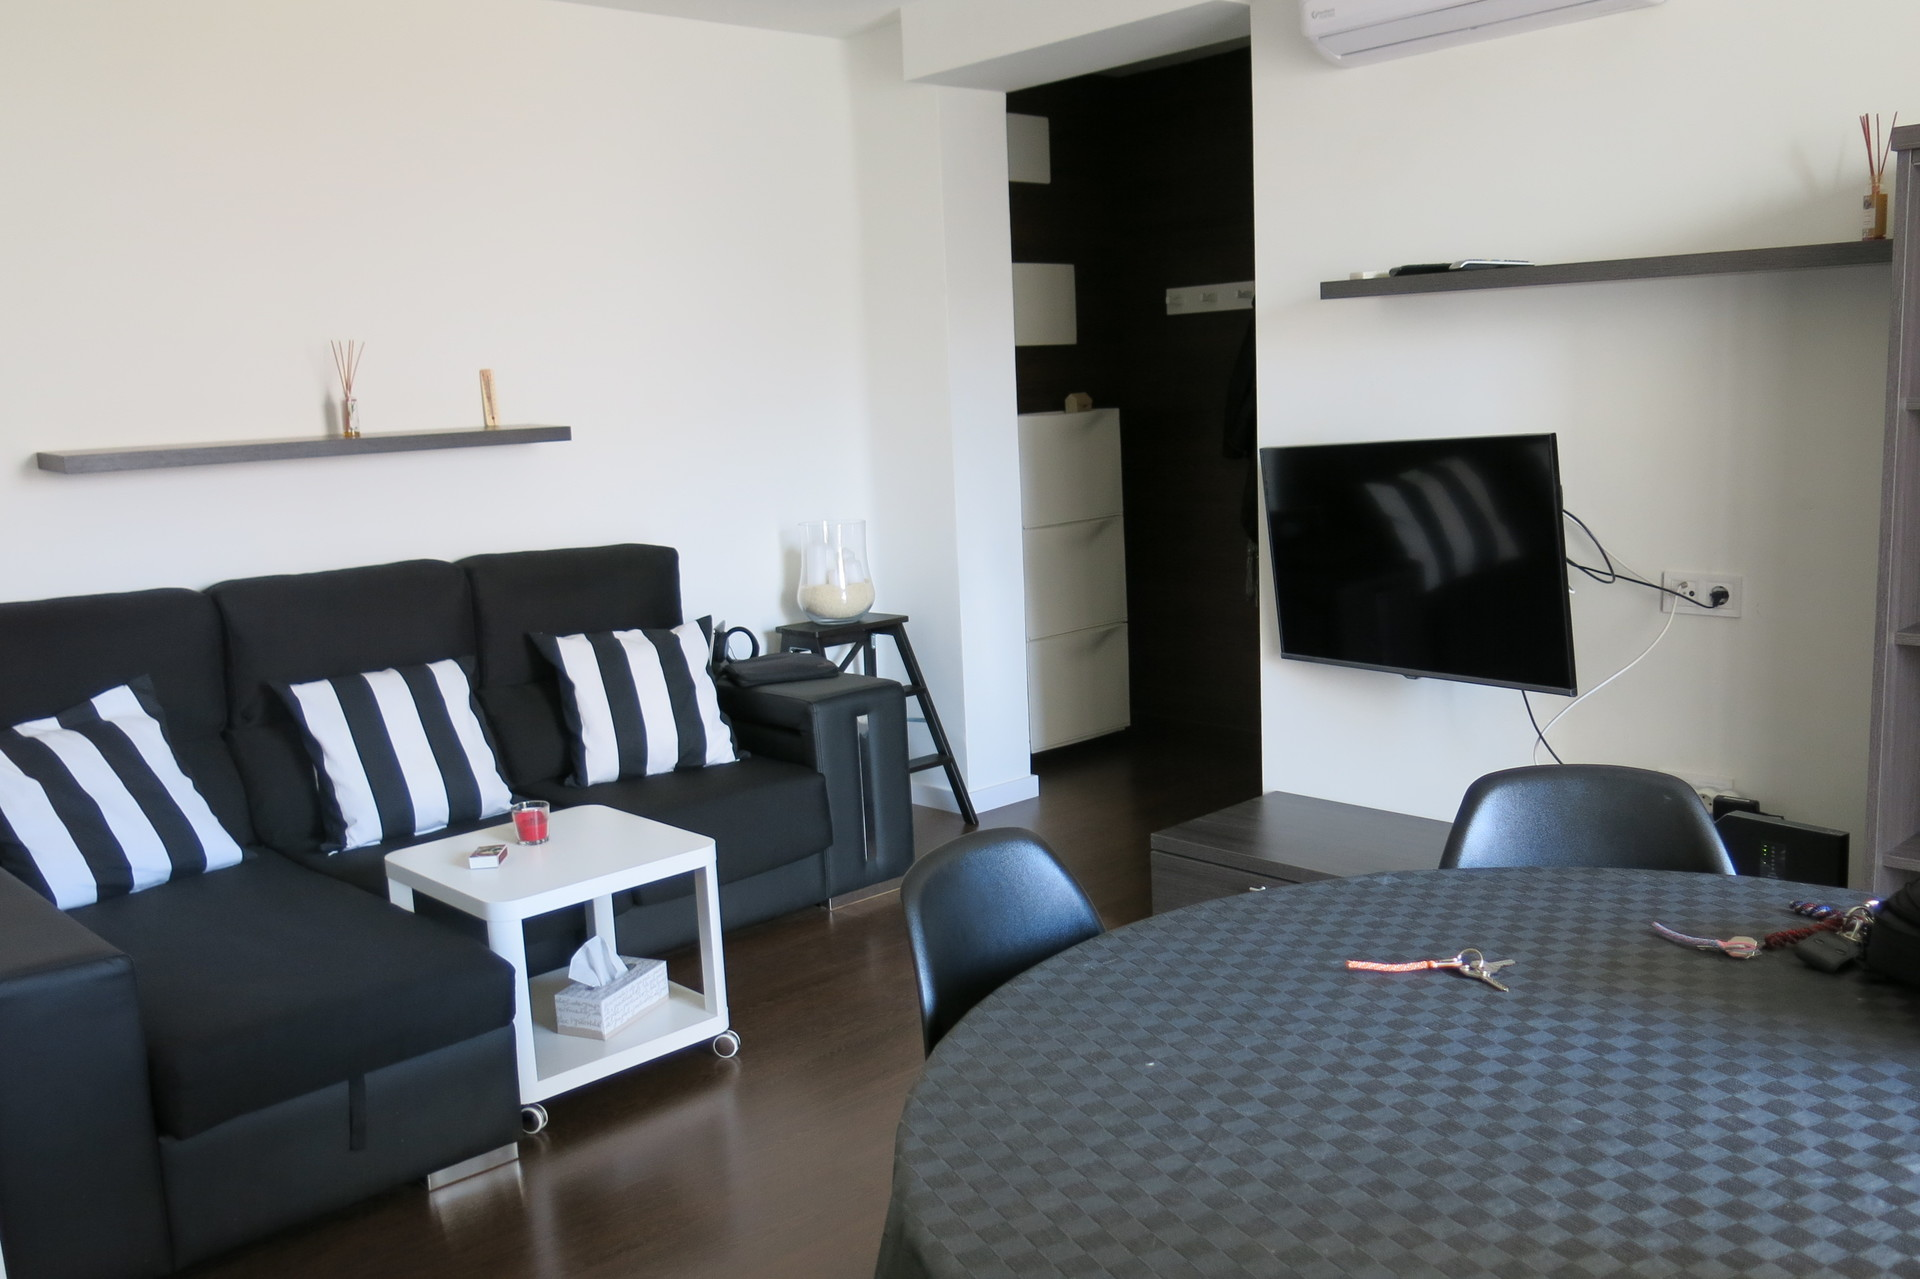 2 Rooms To Rent From February 10th In A Beautiful Flat Burjassot 54 M